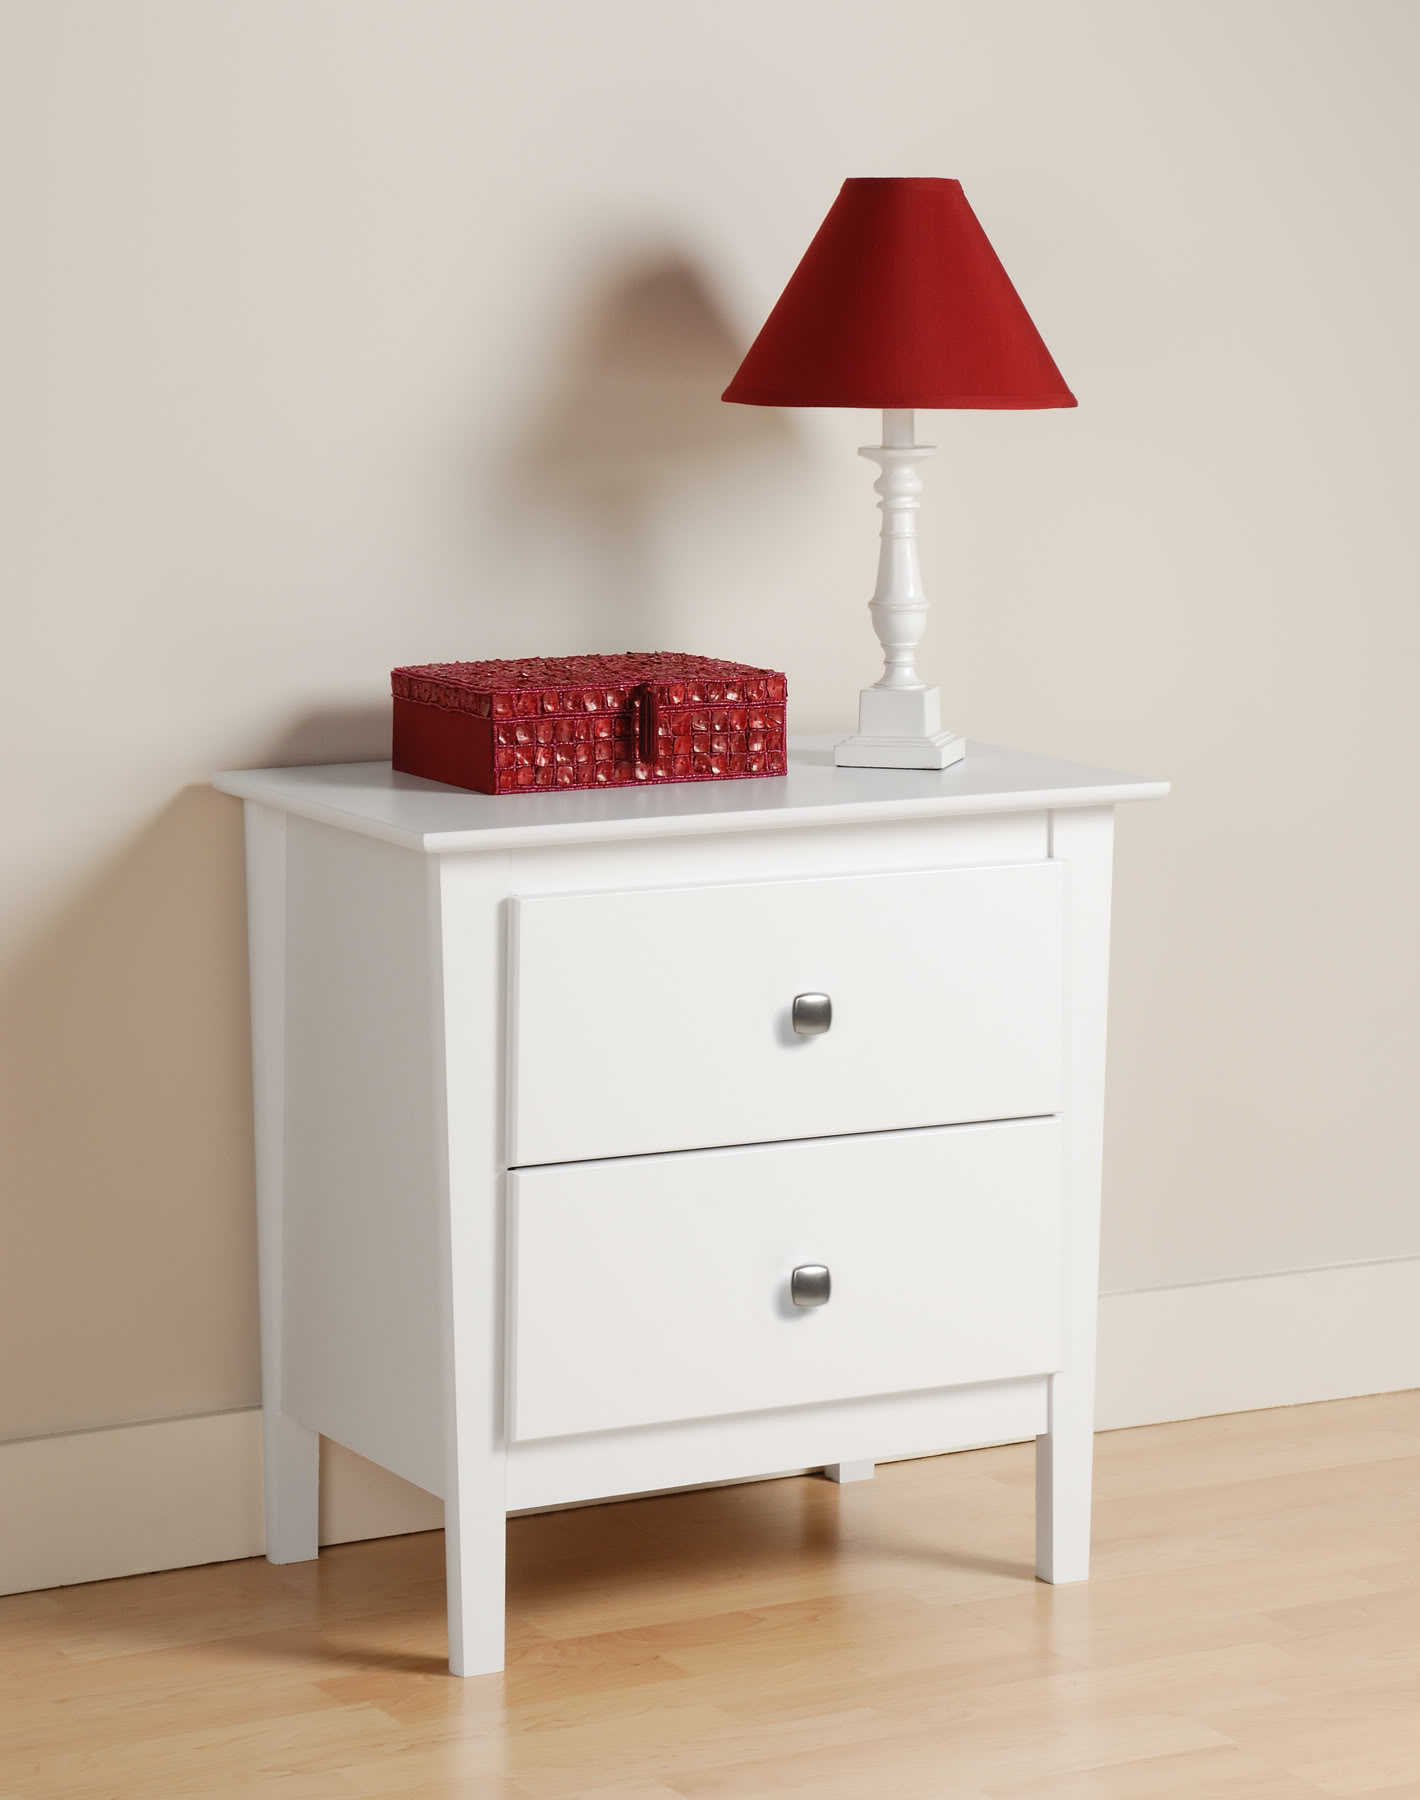 white bedroom end tables table design ideas narrow nightstand hot home decor small bedside keep your black round dining set pre assembled kitchen cabinets gold geometric side and